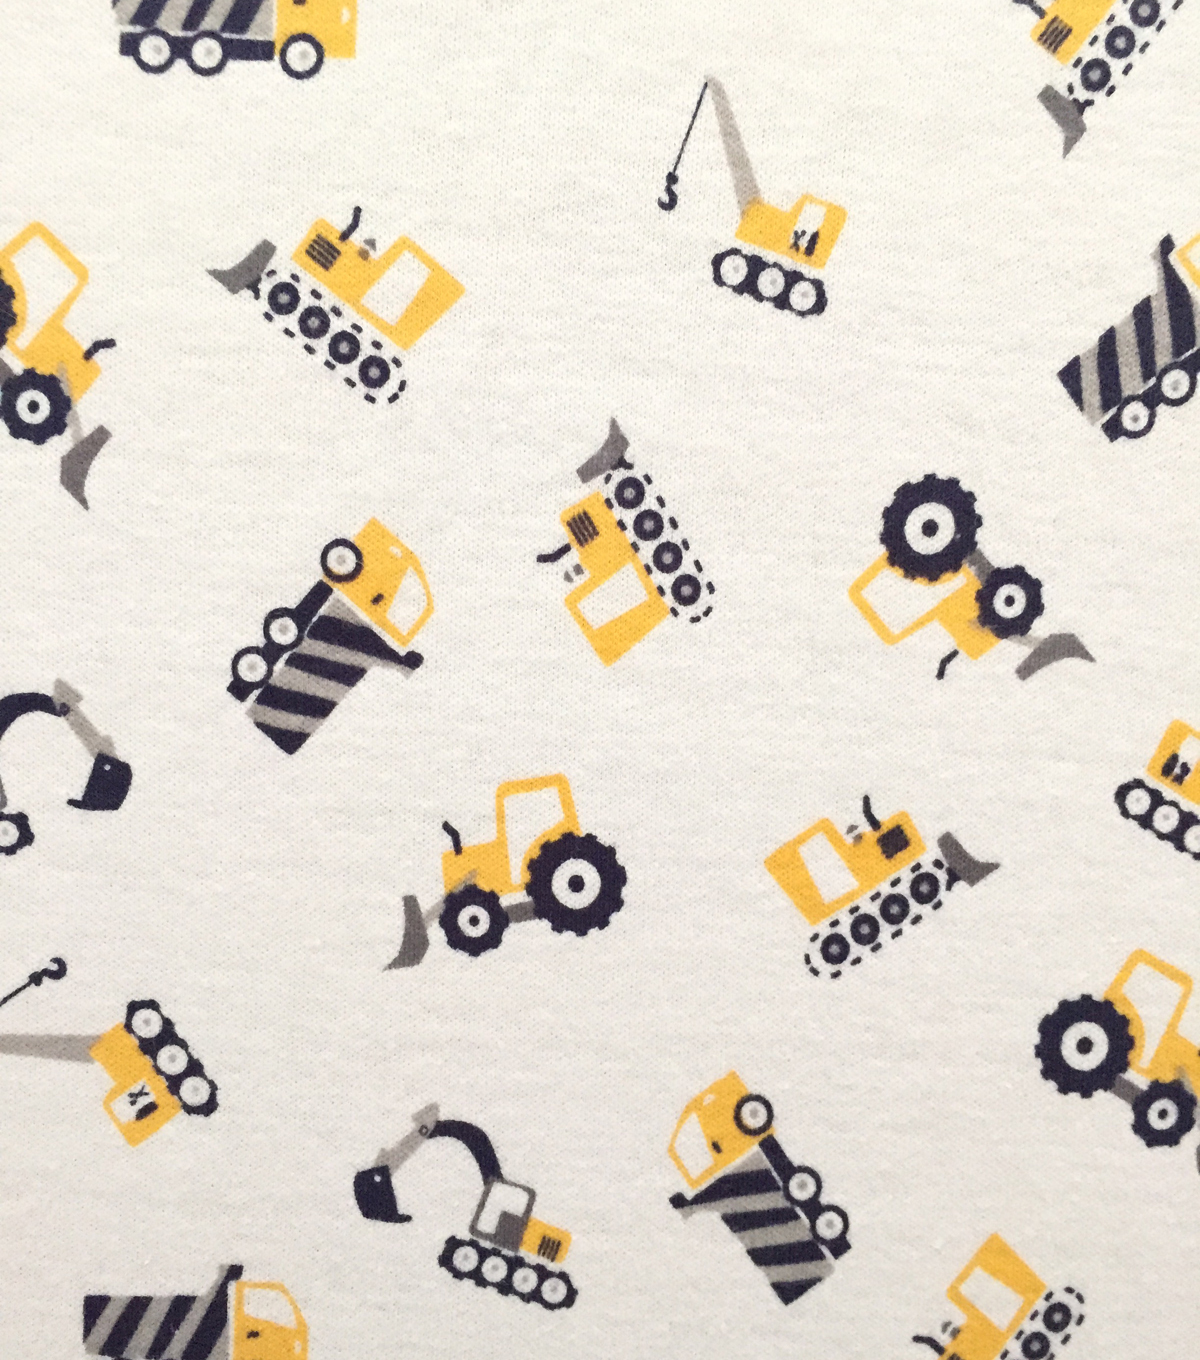 Doodles® Juvenile Apparel Fabric 57''-Trucks